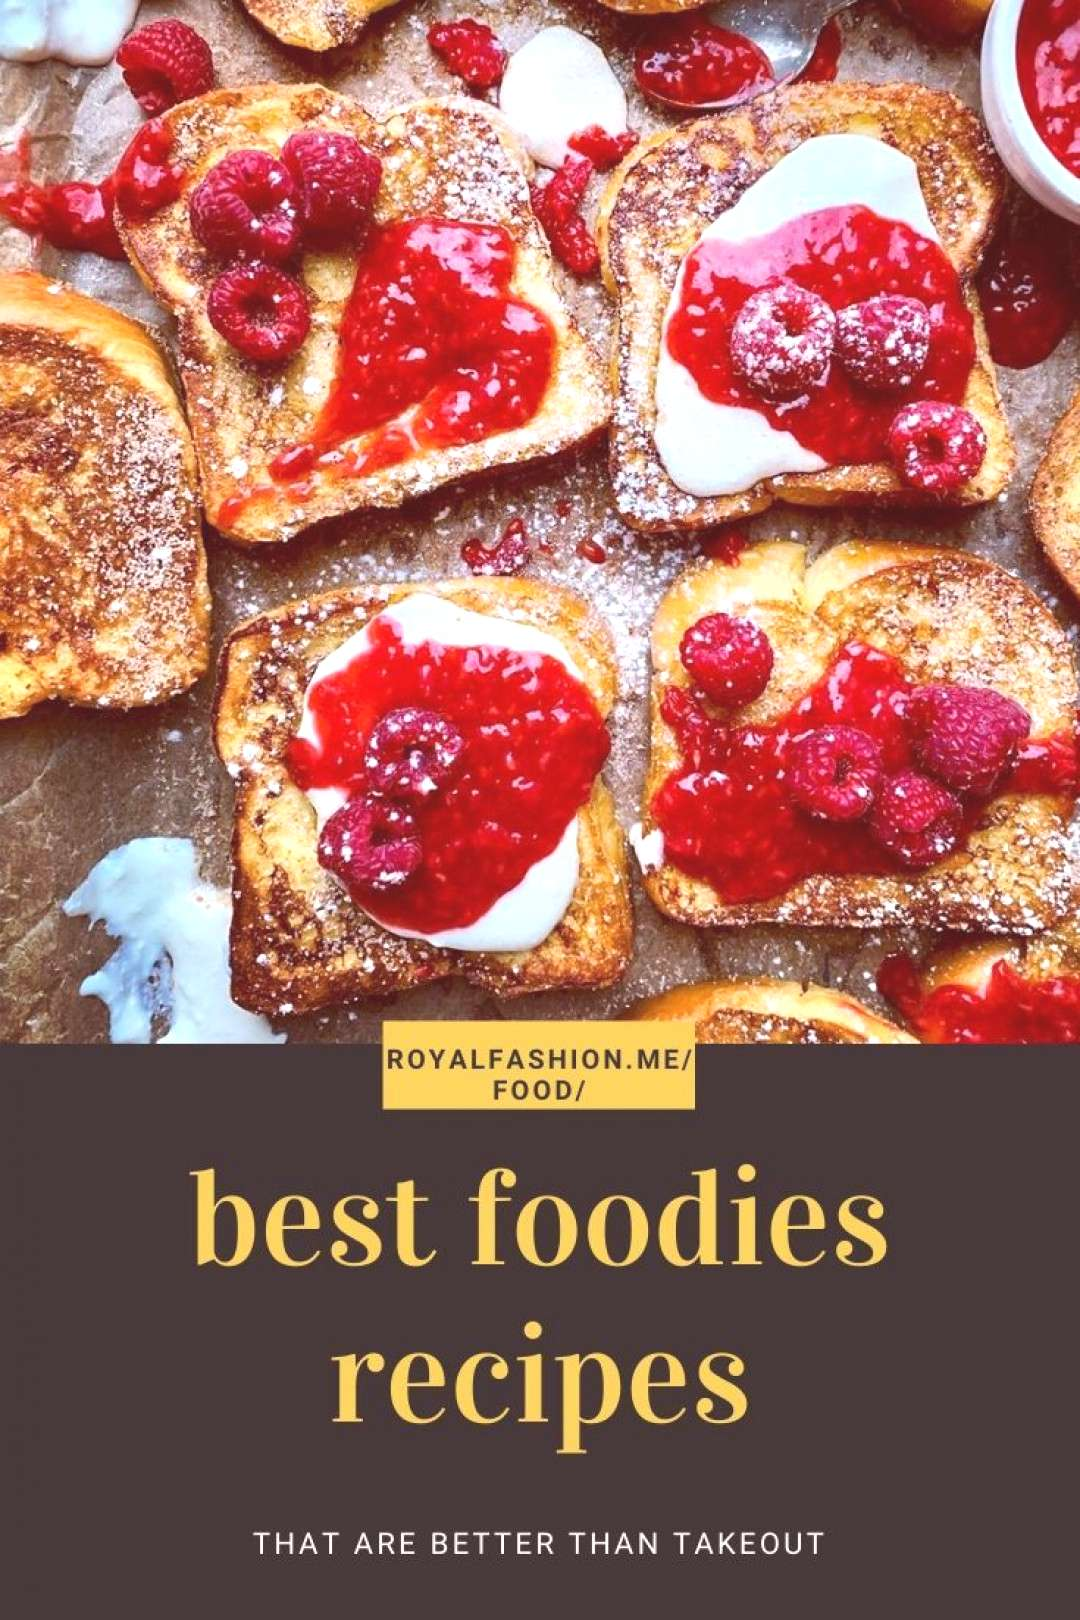 Raspberry French Toast with Raspberry Sauce and Sweetened Whipped Ricotta